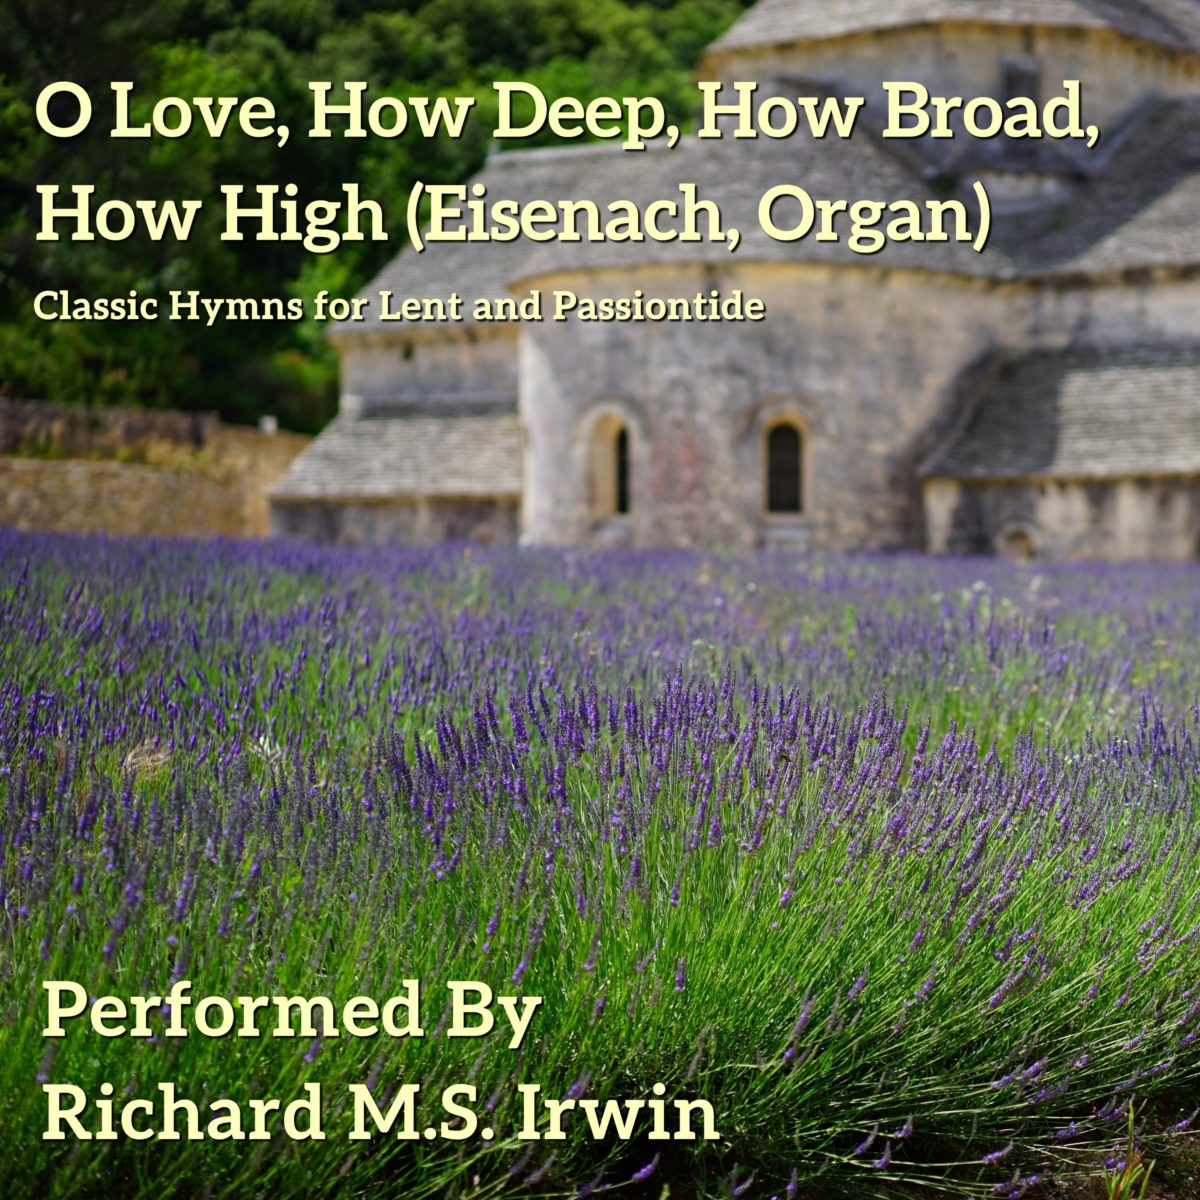 O Love How Deep (Eisenach, Organ, 6 Verses)